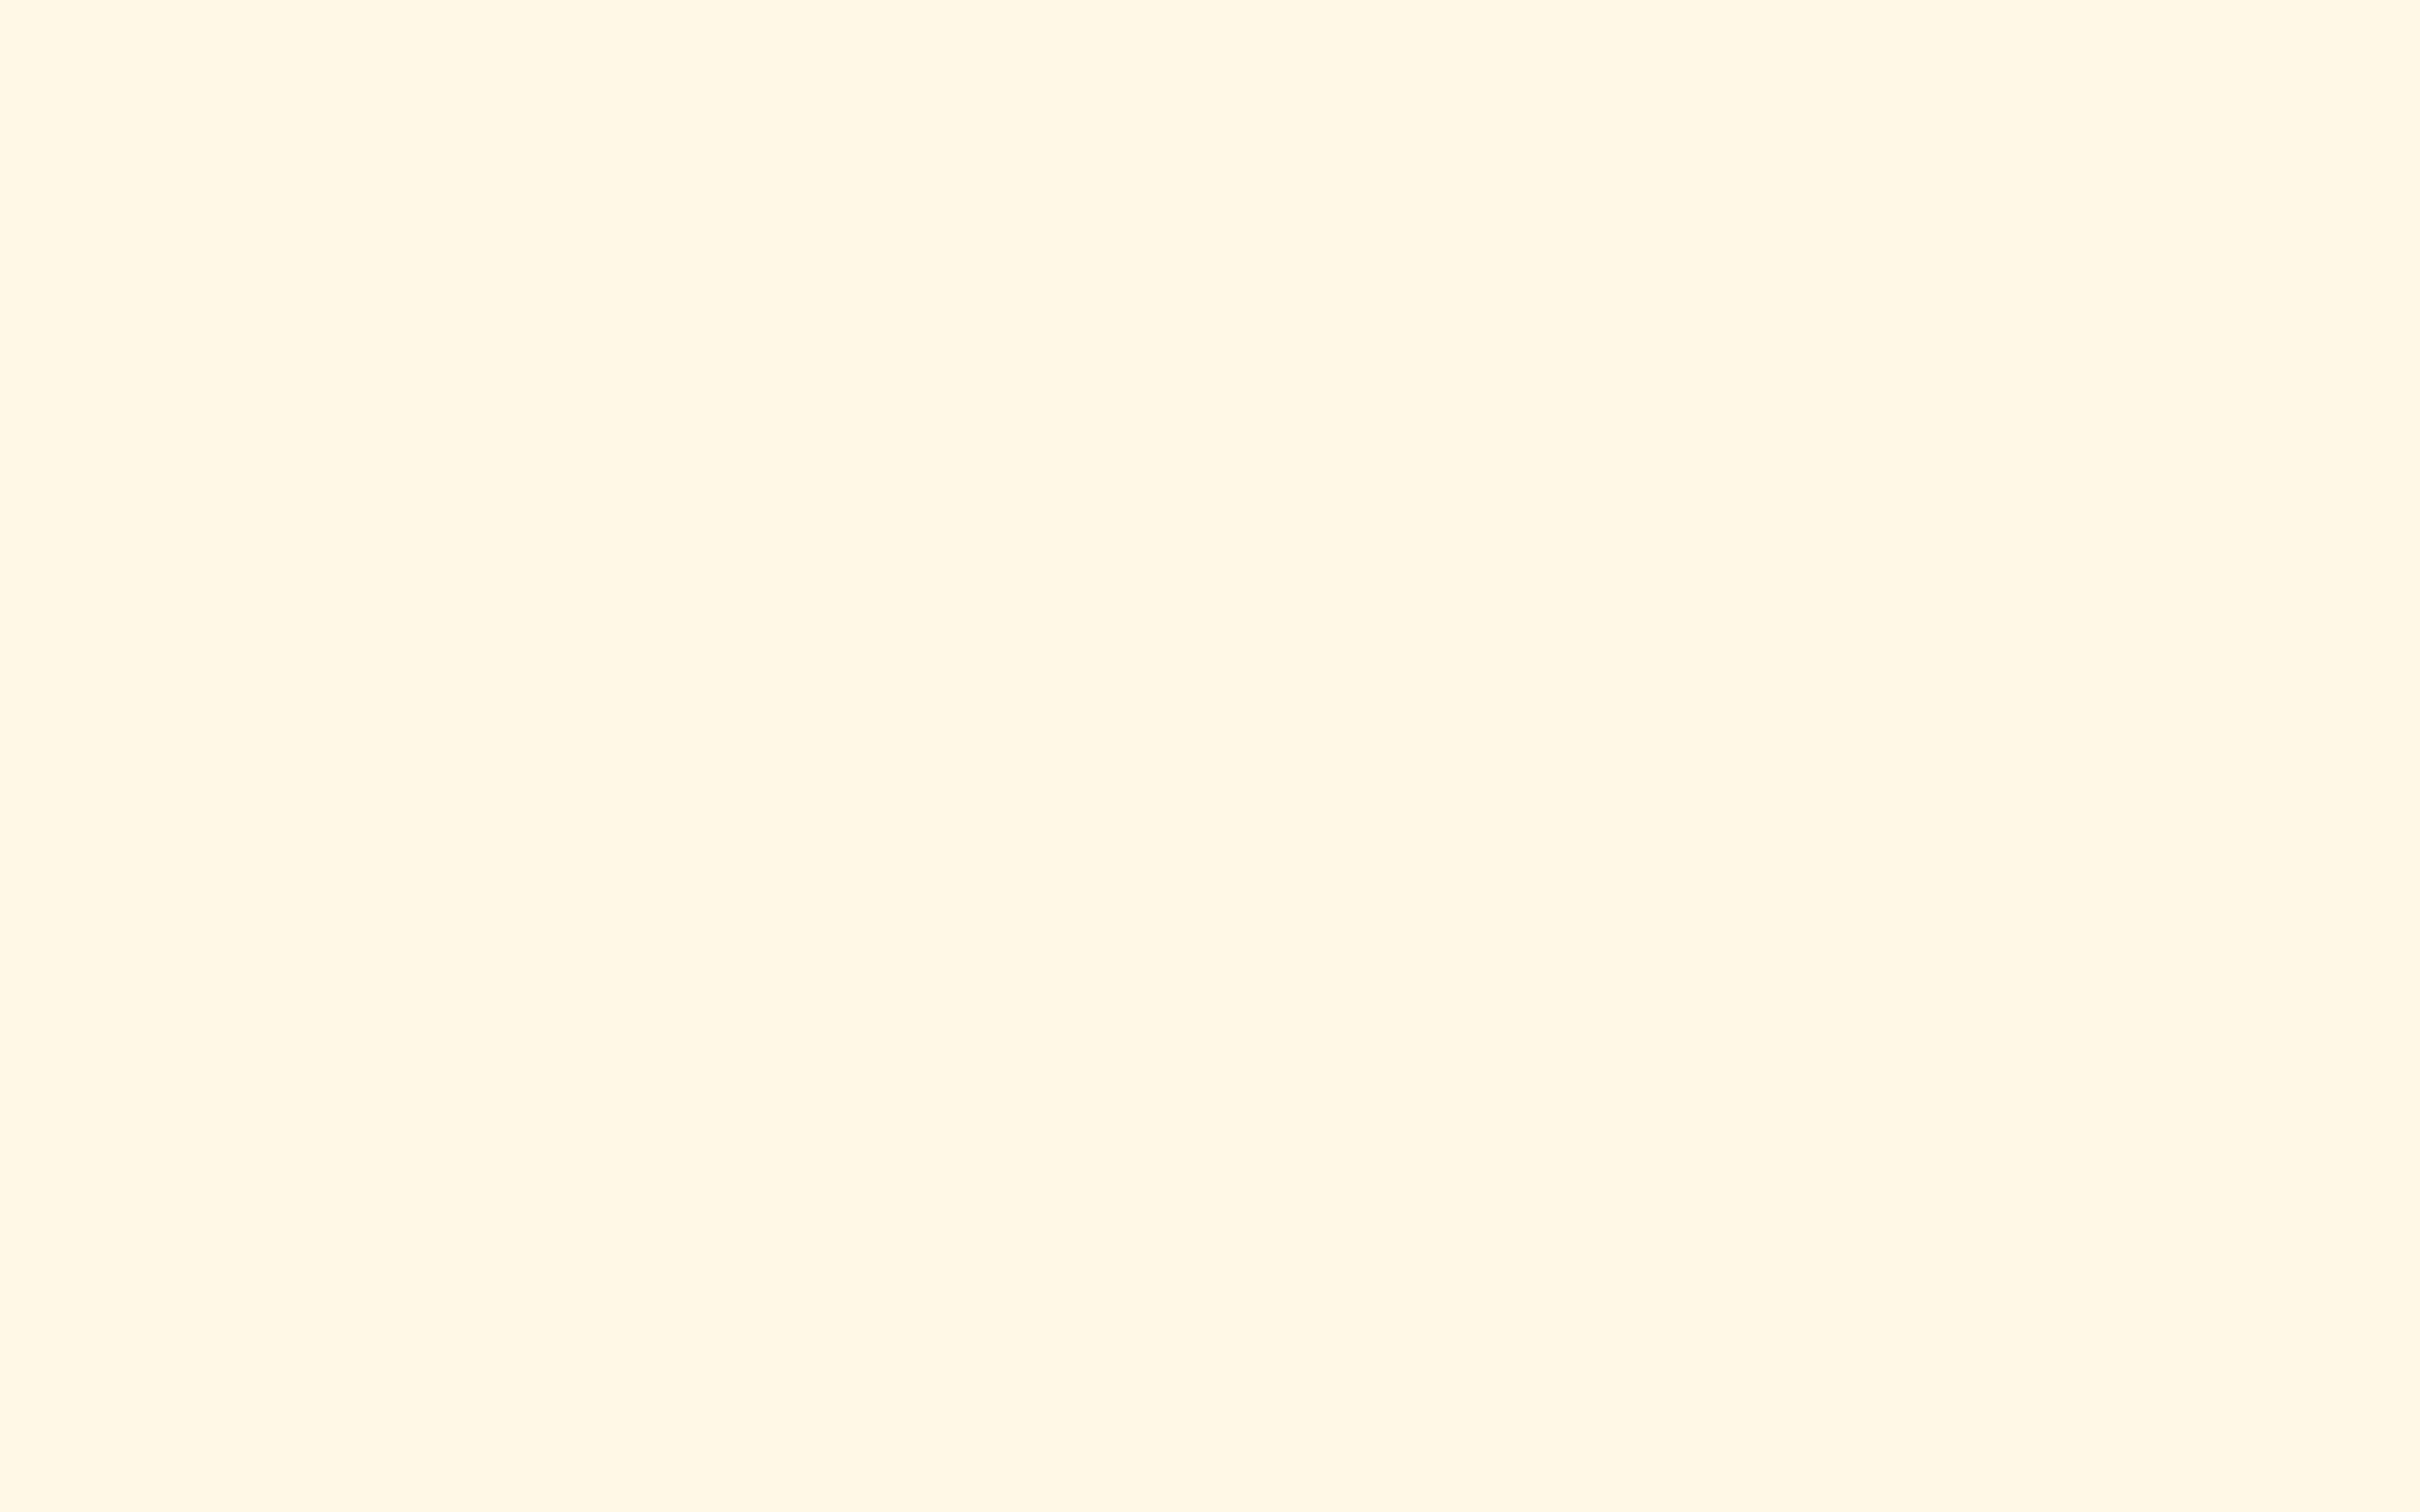 2560x1600 Cosmic Latte Solid Color Background